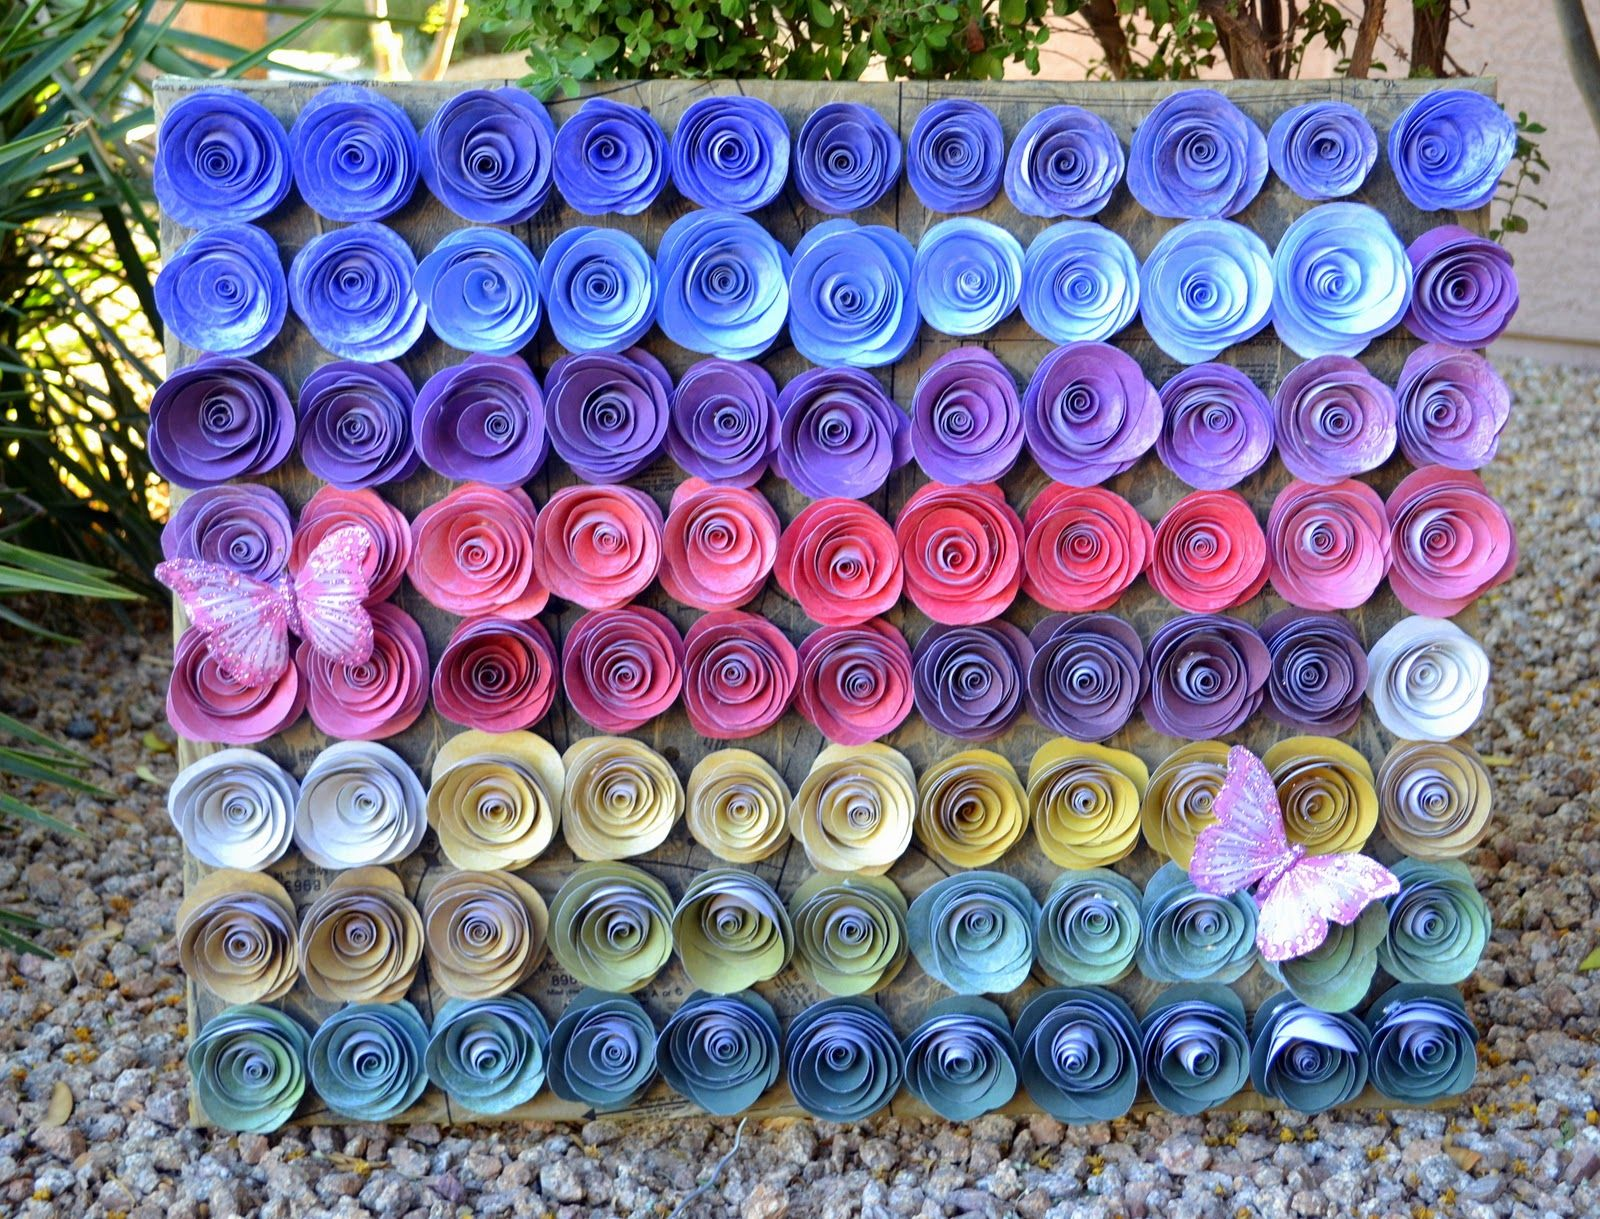 LESSology design team member Julie Tucker-Wolek decorated her canvas with 77 handmade paper blooms!